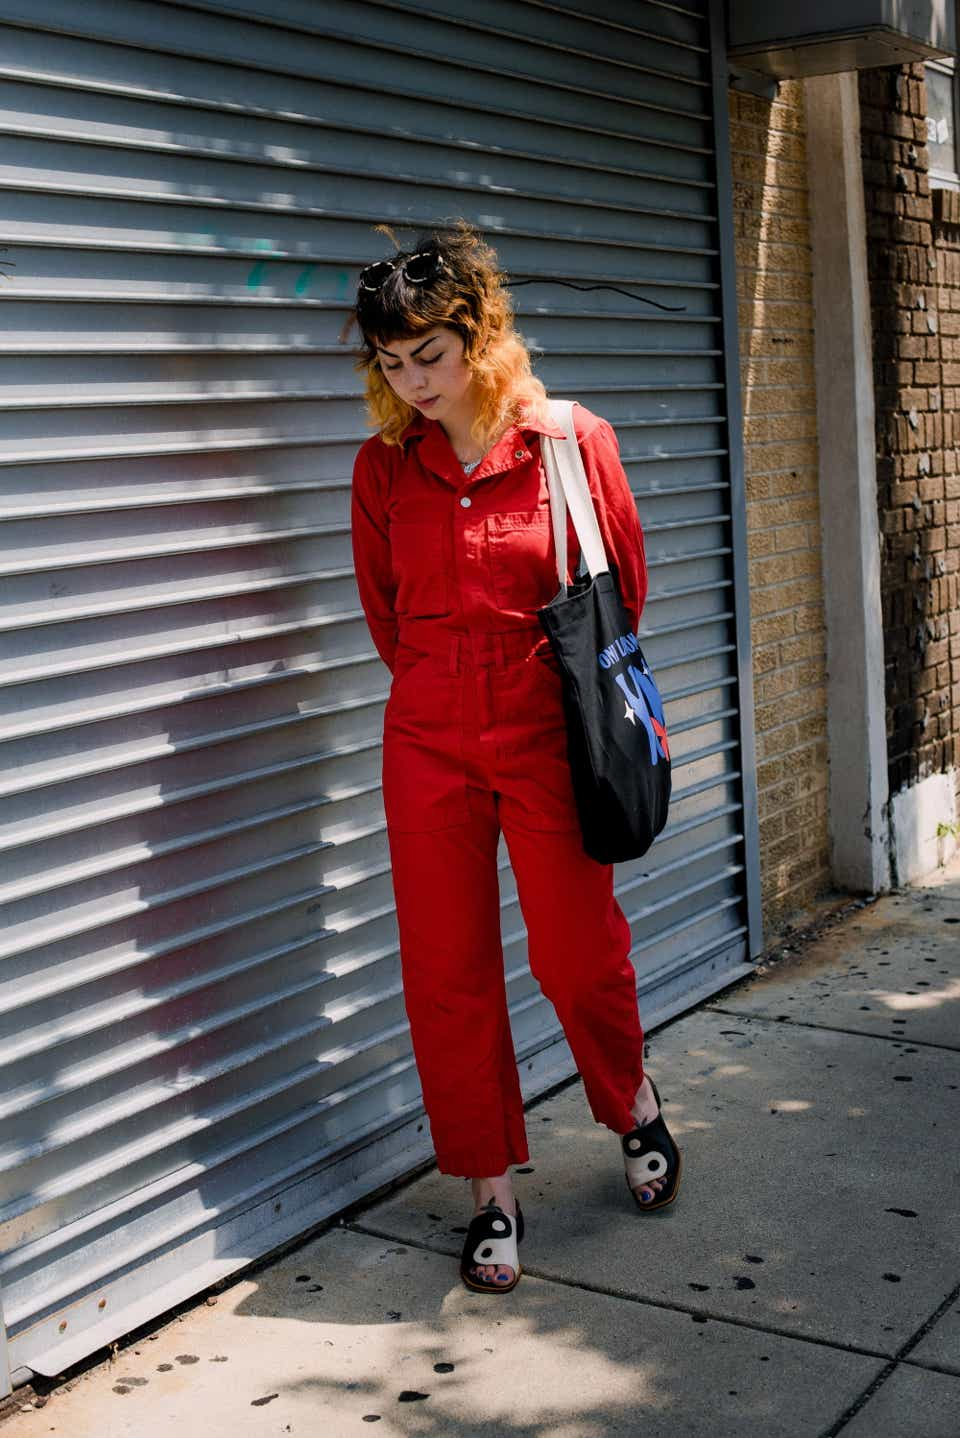 Mia is walking while wearing a red jumpsuit and carrying a black tote bag. Her shoes are ying-yang sandals and she has sandals on her head.